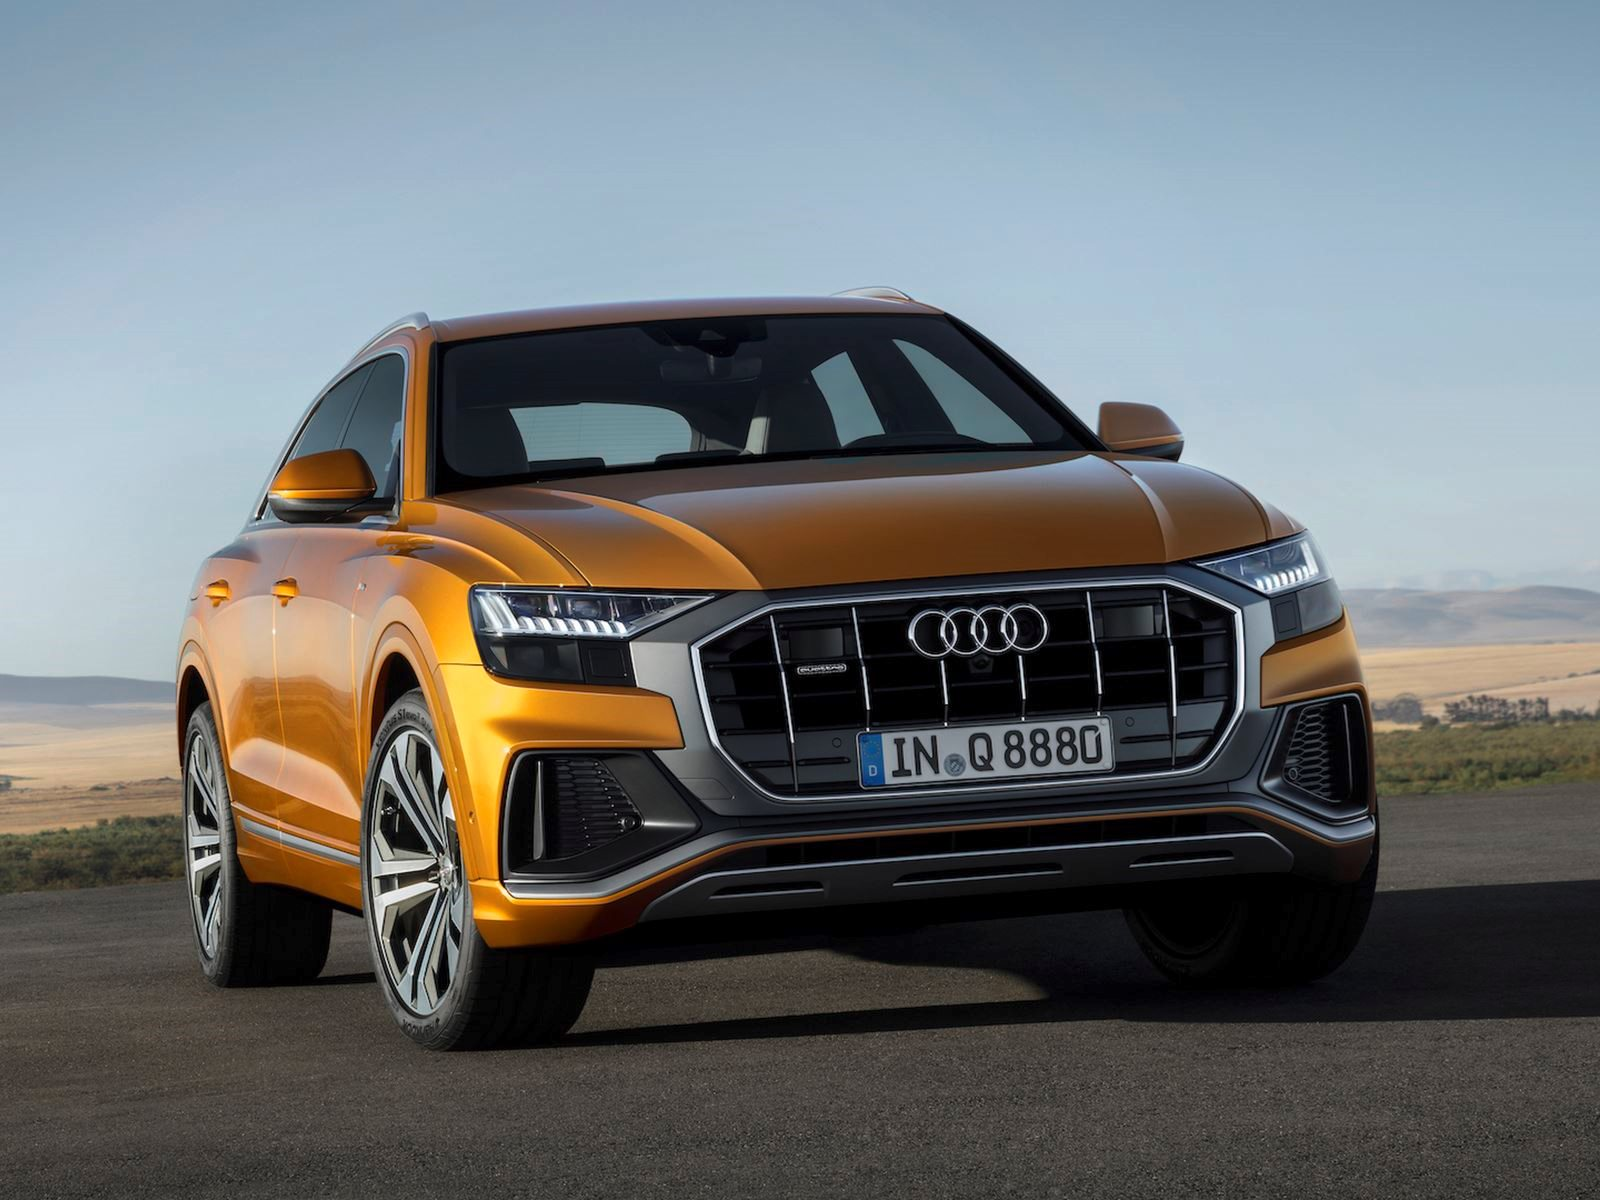 The Q8 Is Just The Start Audi s Ambitious SUV slaught CarBuzz